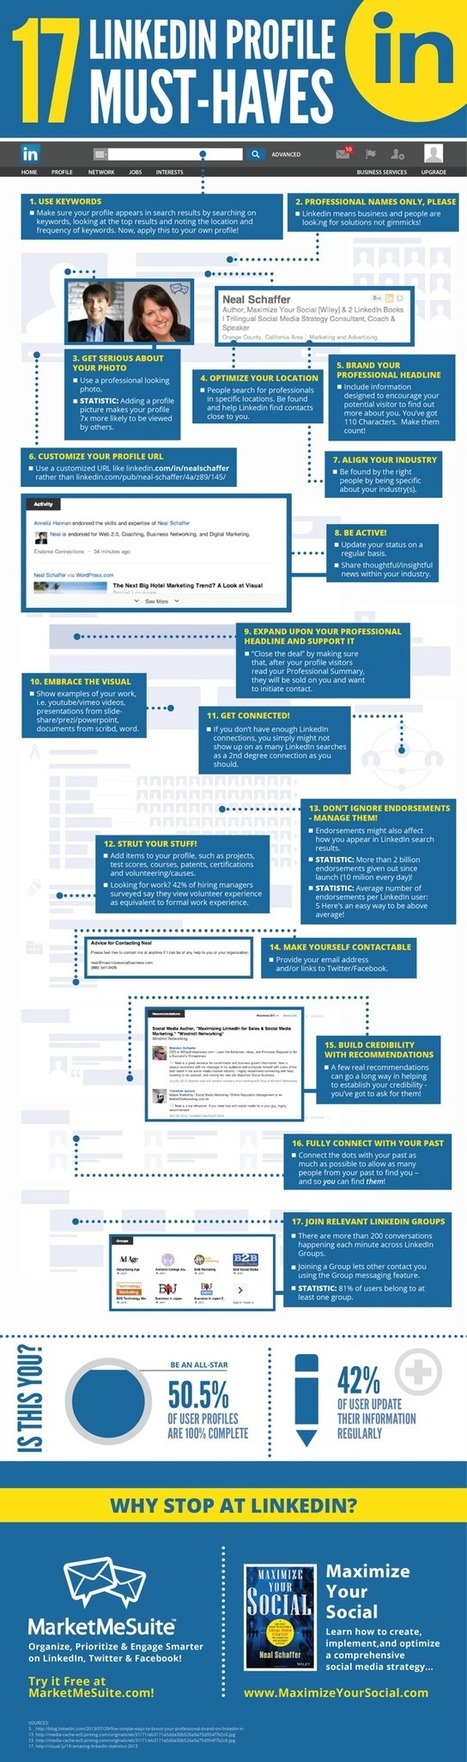 17 LinkedIn Profile Must-Haves - Blog About Infographics and Data Visualization - Cool Infographics | Marketing | Scoop.it